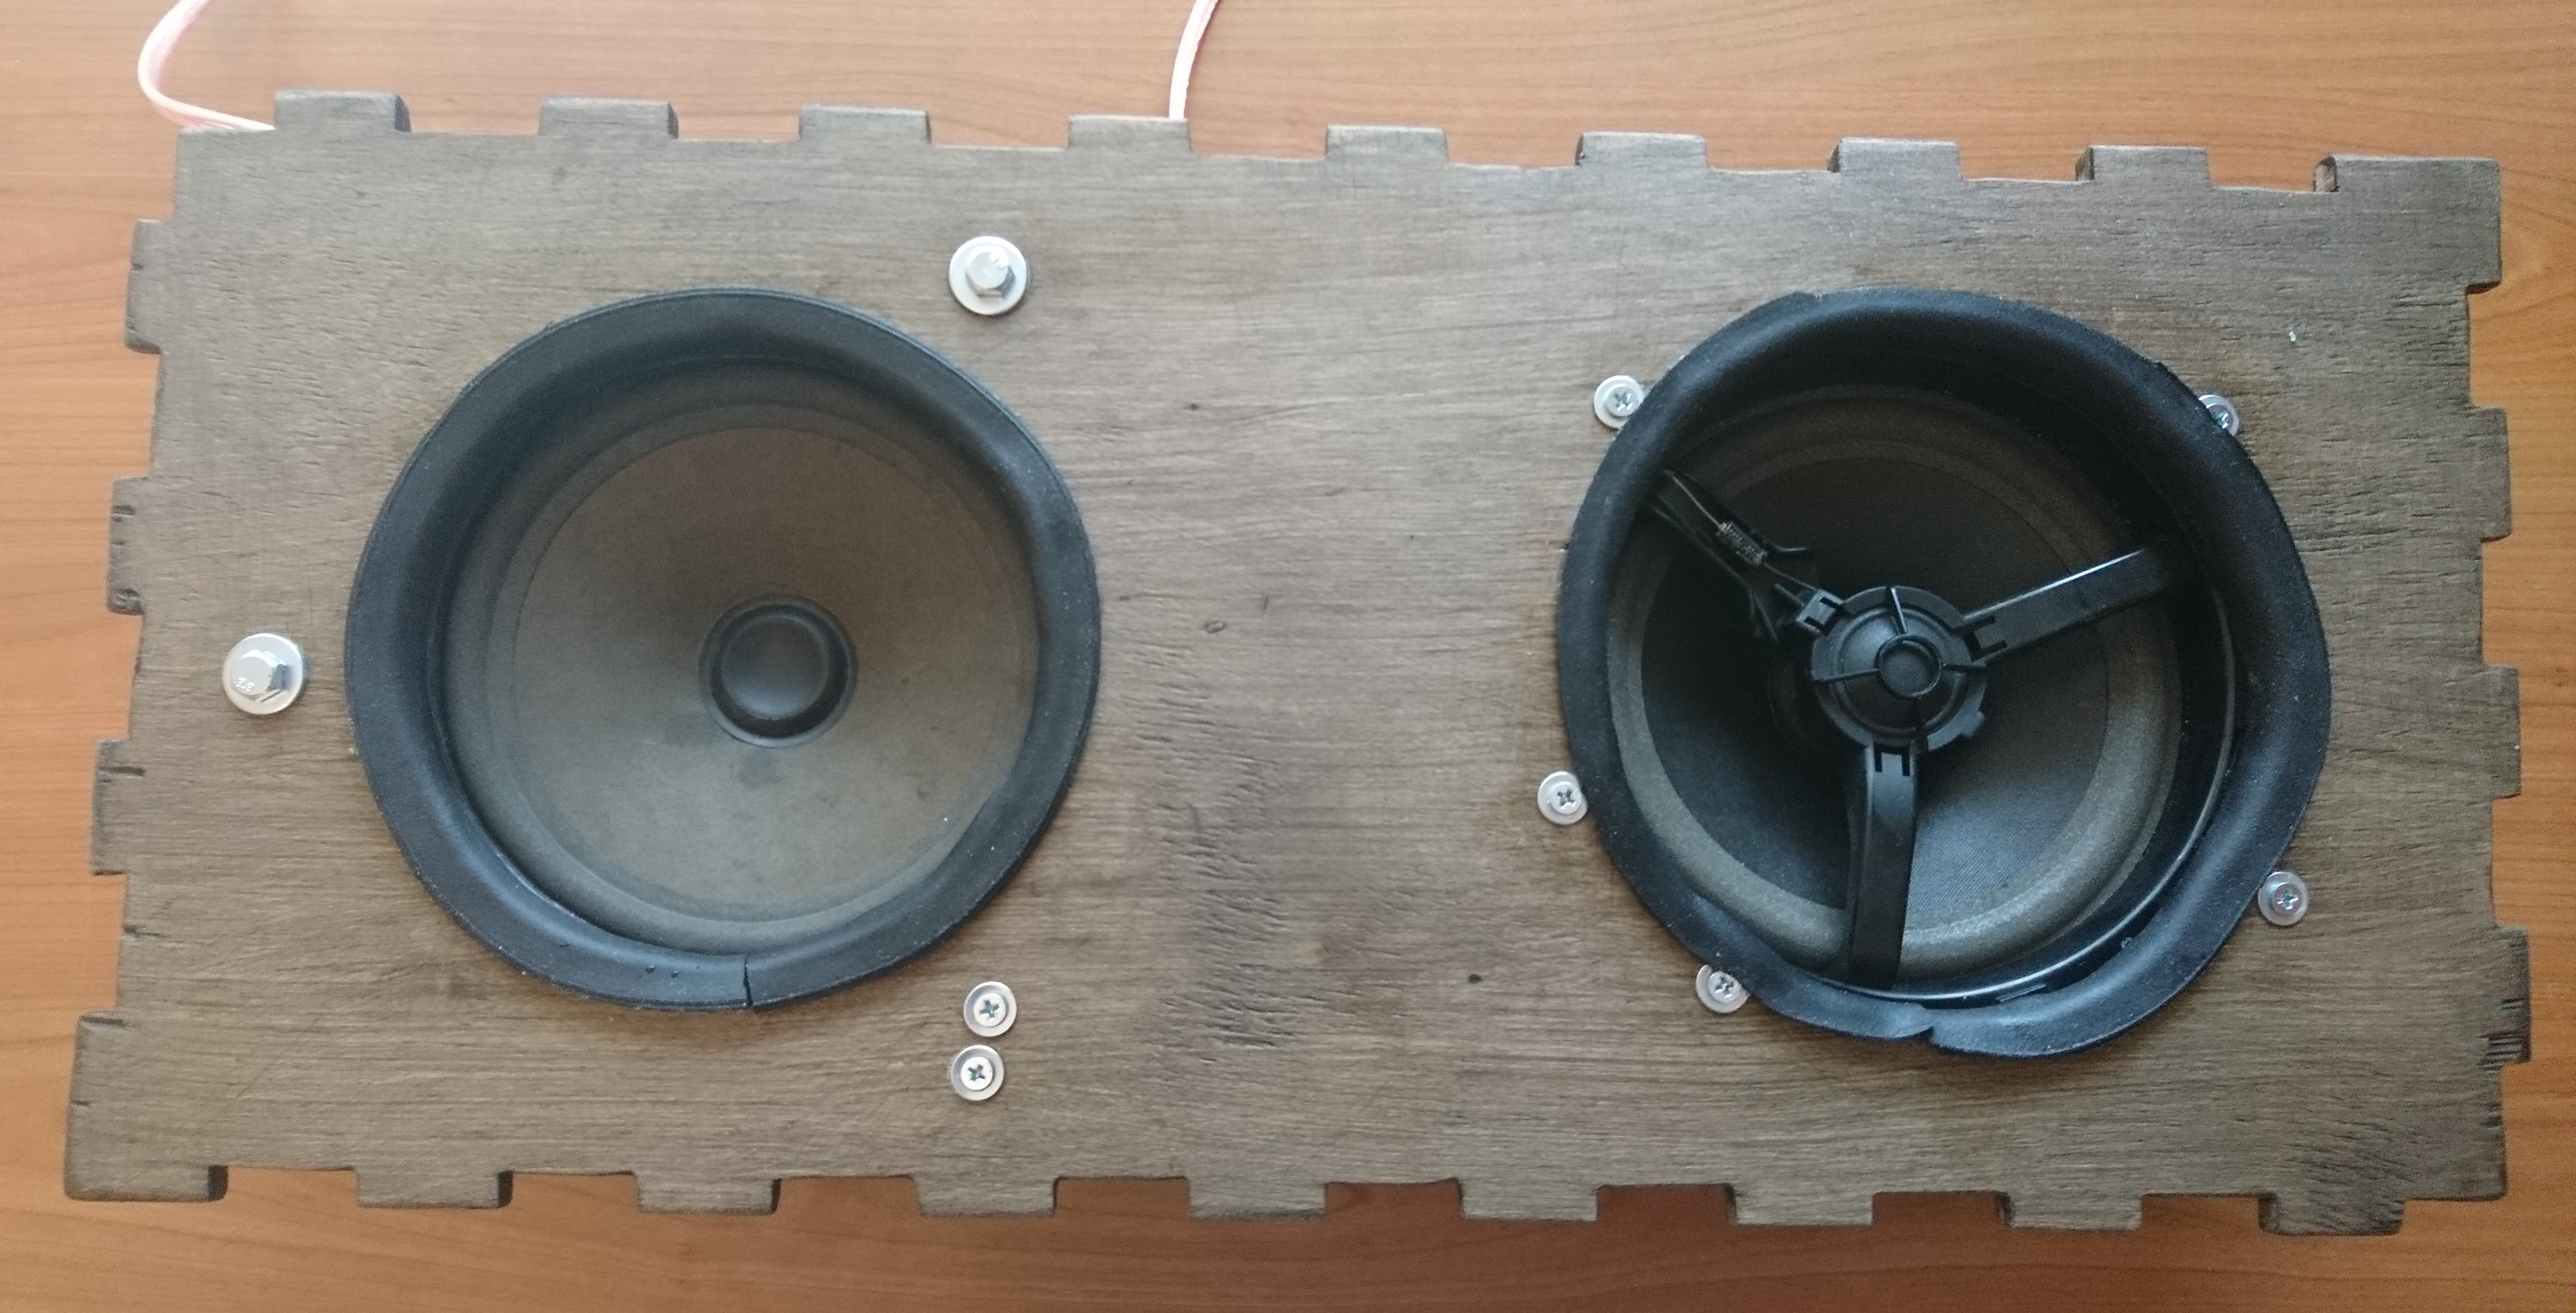 Picture of Making the Enclosure - Mounting the Main Speakers